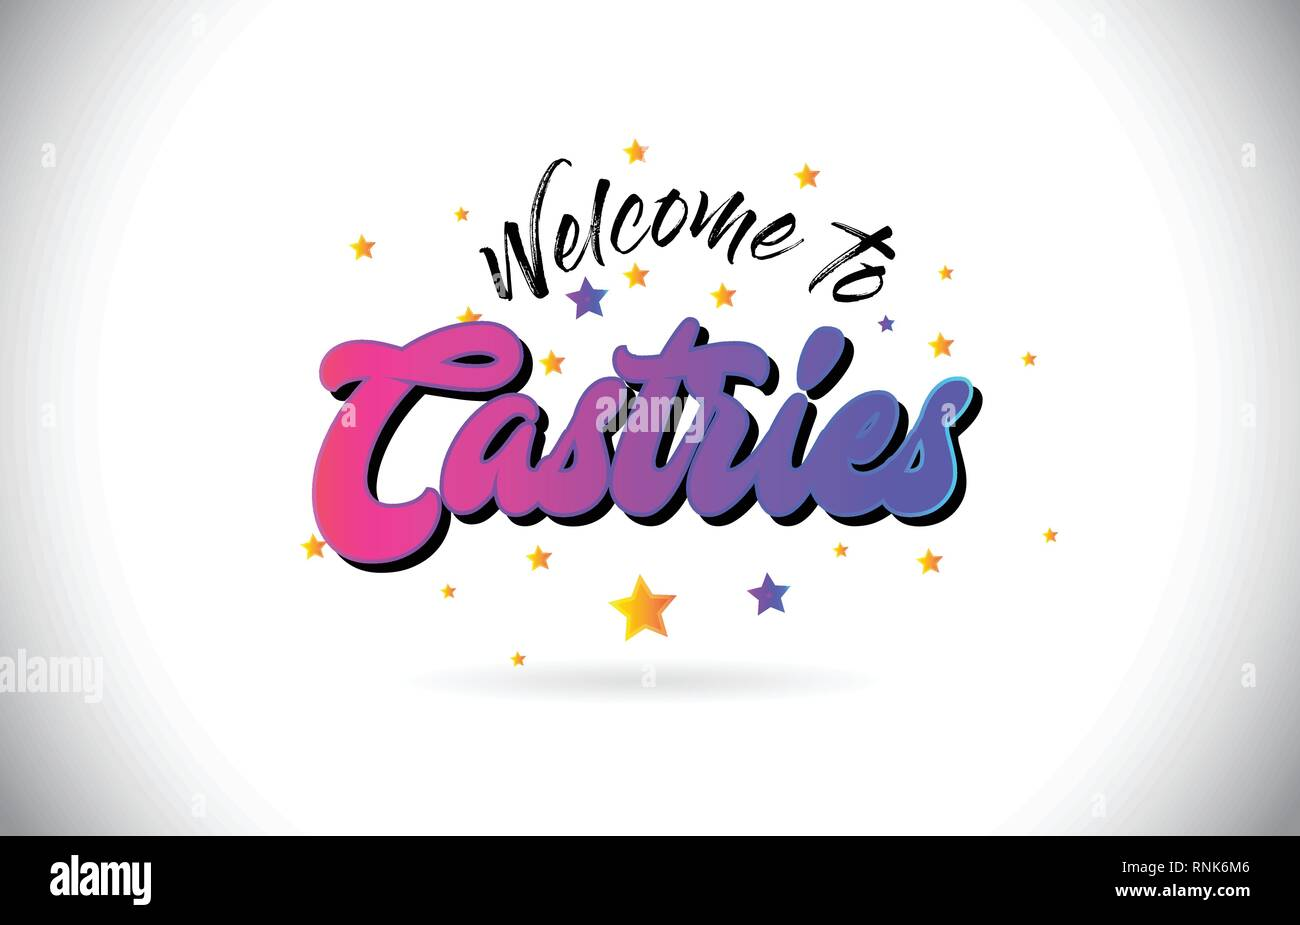 Castries Welcome To Word Text with Purple Pink Handwritten Font and Yellow Stars Shape Design Vector Illusration. - Stock Image